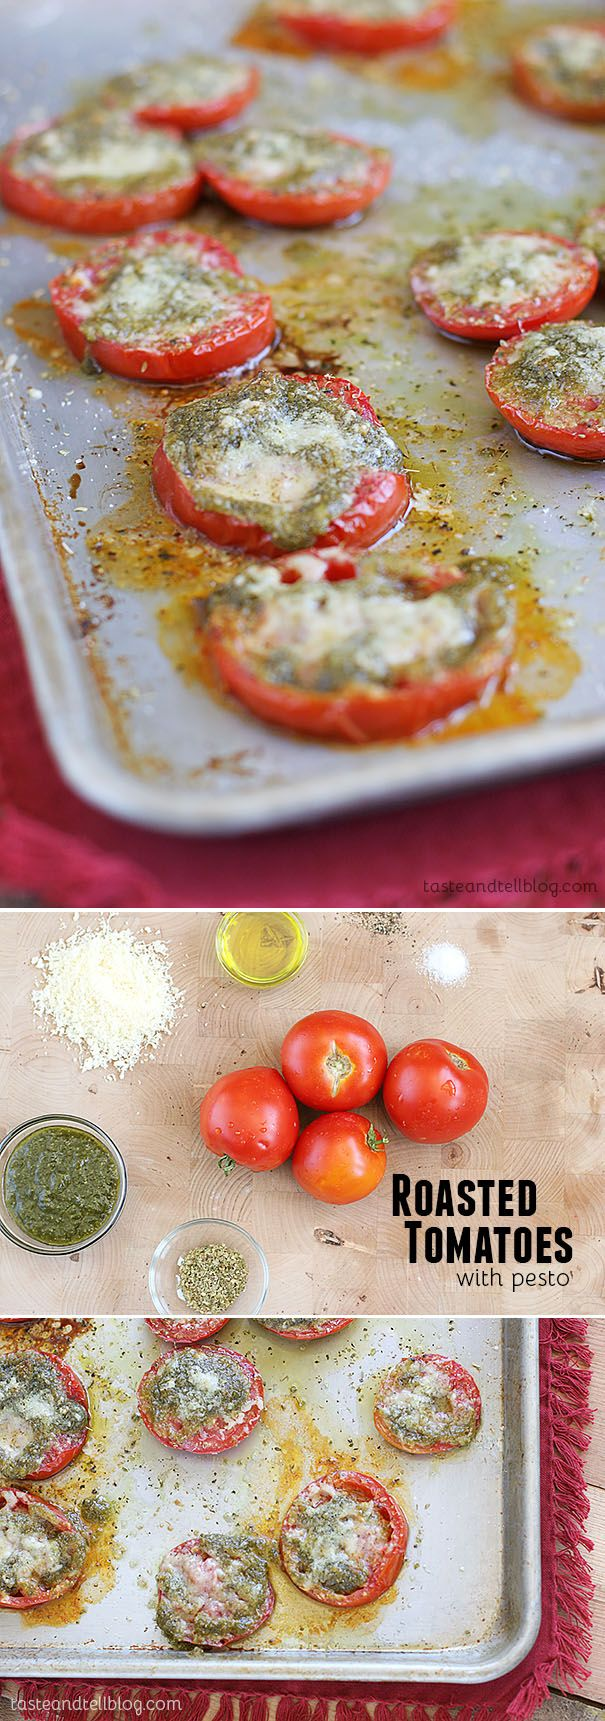 Roasted Tomatoes with Pesto